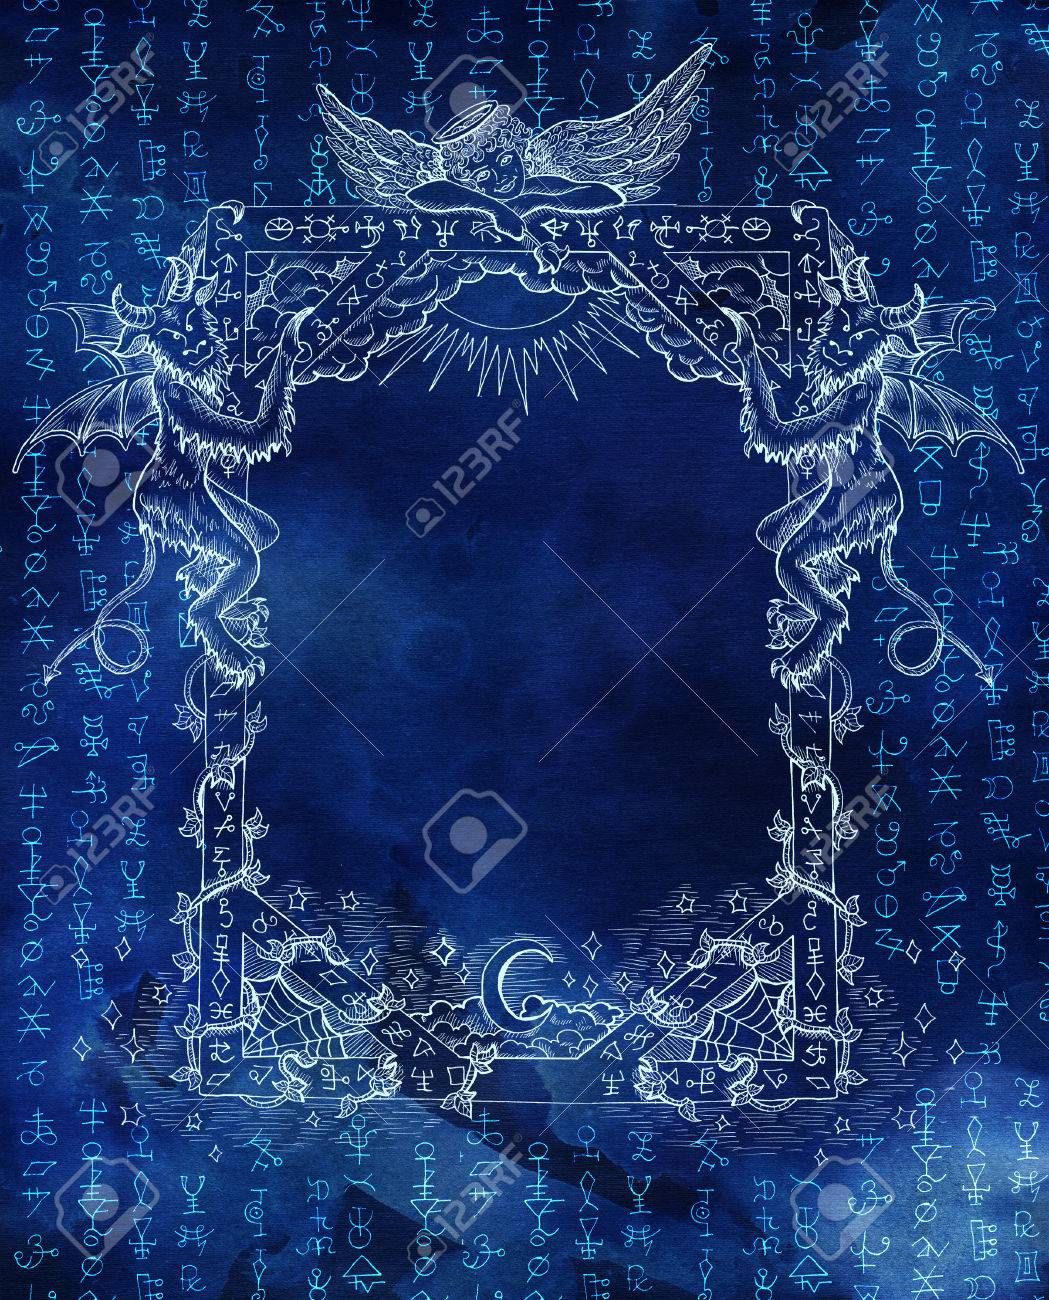 Abstract background with golden mystic symbols on blue texture abstract background with golden mystic symbols on blue texture for wallpapers cards print biocorpaavc Choice Image